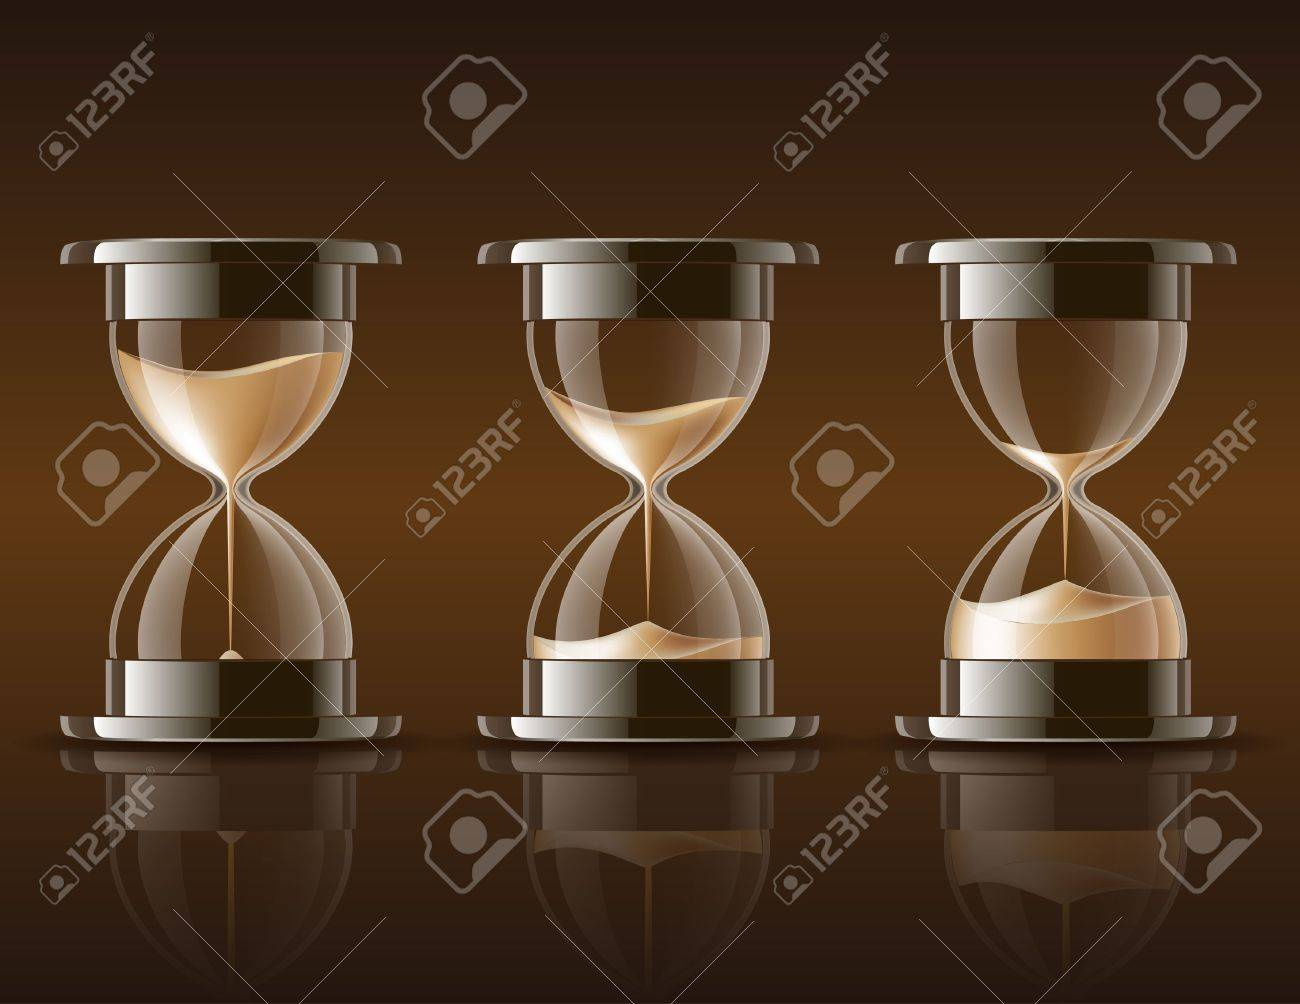 Sand falling in the hourglass in three different states on dark background illustration - 18785226